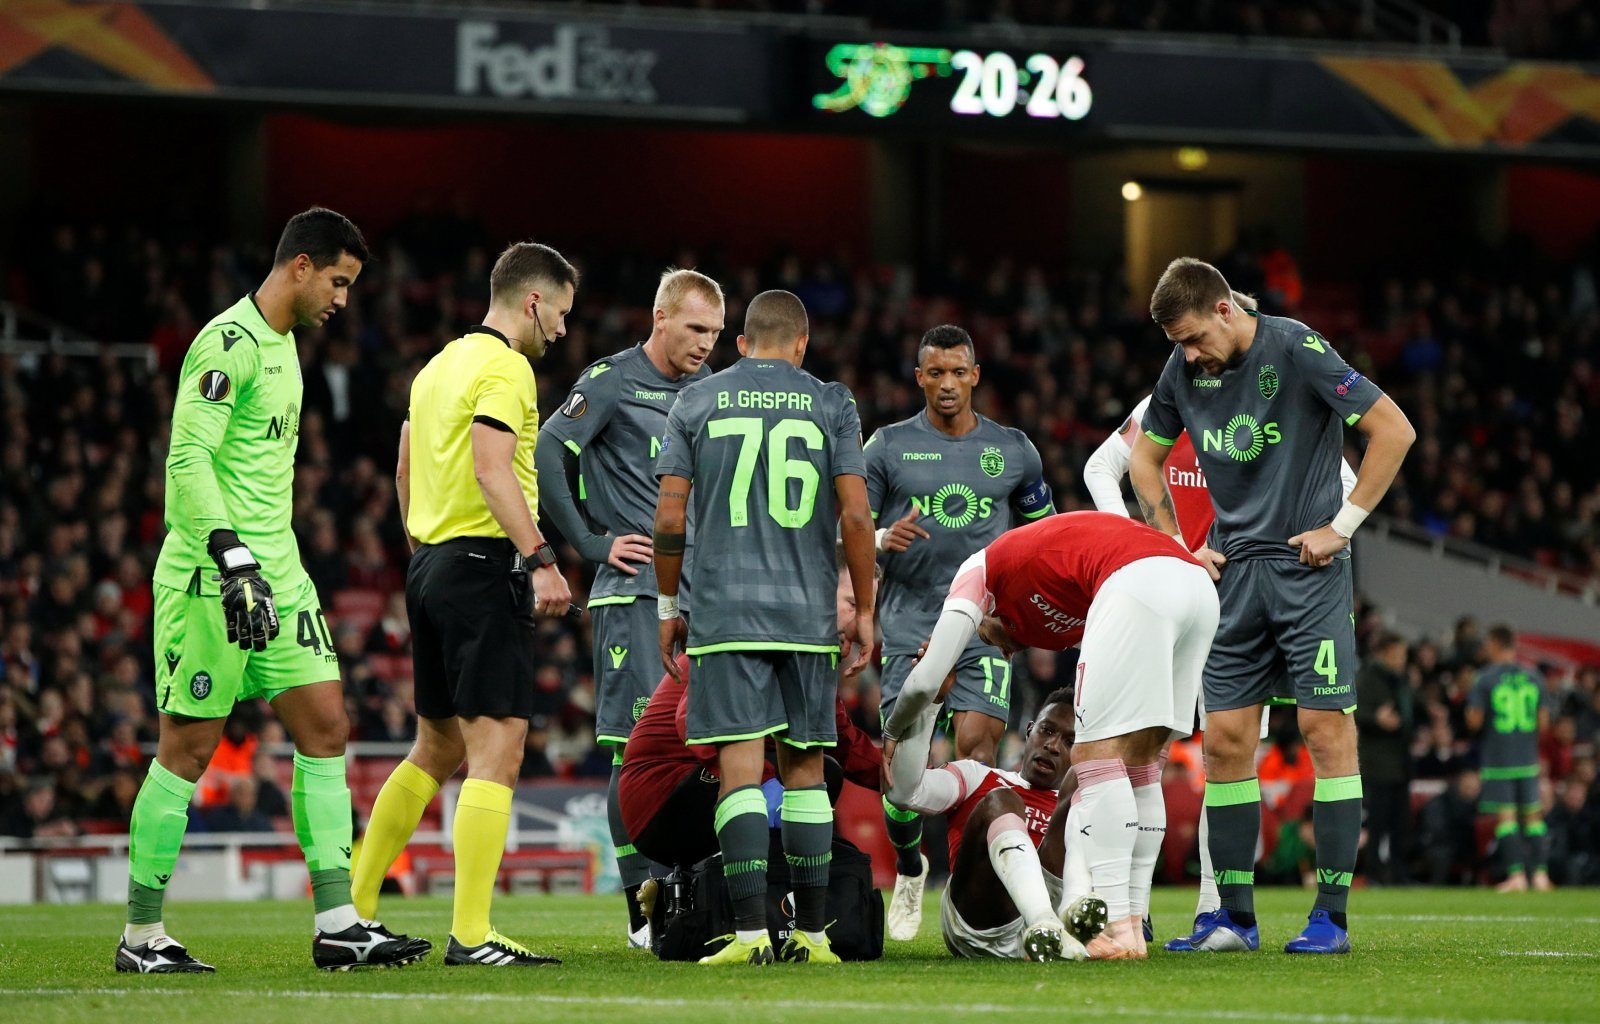 Arsenal fans on Twitter react to Danny Welbeck's horror injury